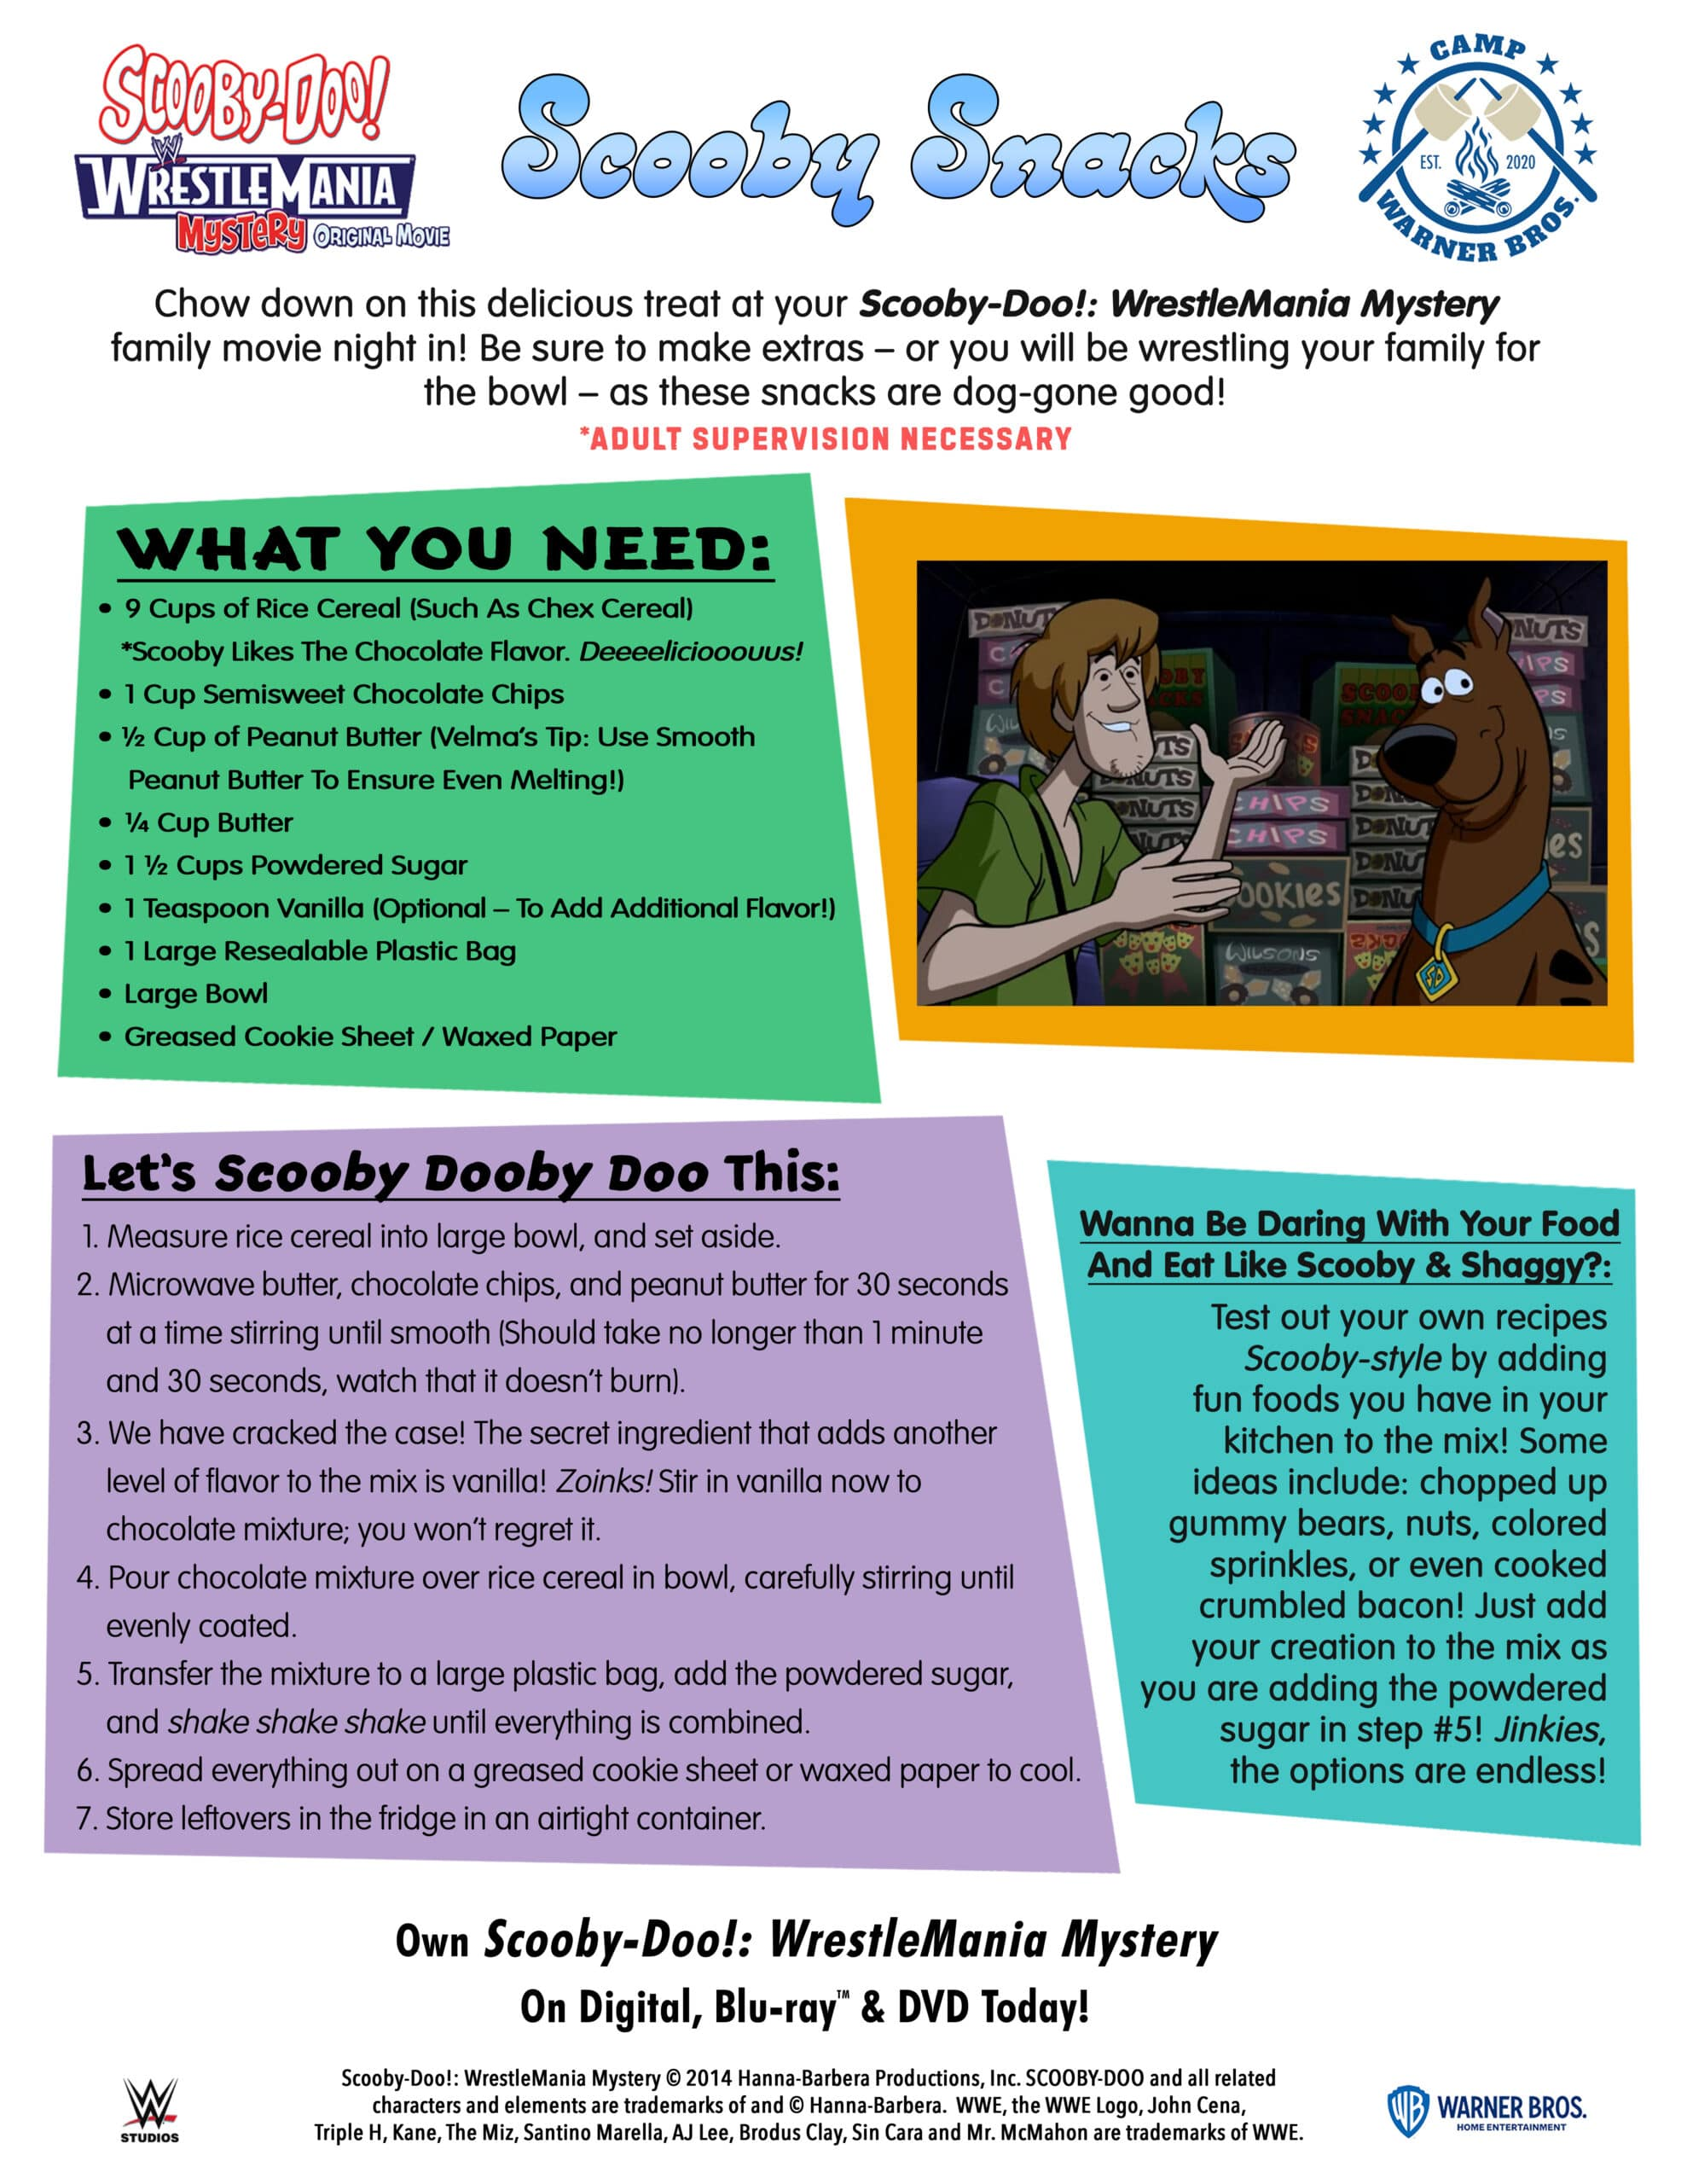 ScoobyDoo WWE ScoobySnacks Activity Sheet. If you enjoy solving a good old mystery with your favorite gang of meddling kids, then you will love this Scooby Snack Recipe. It's full of chocolate, peanut butter and is said to be Scooby's favorite snack when he watches movies.